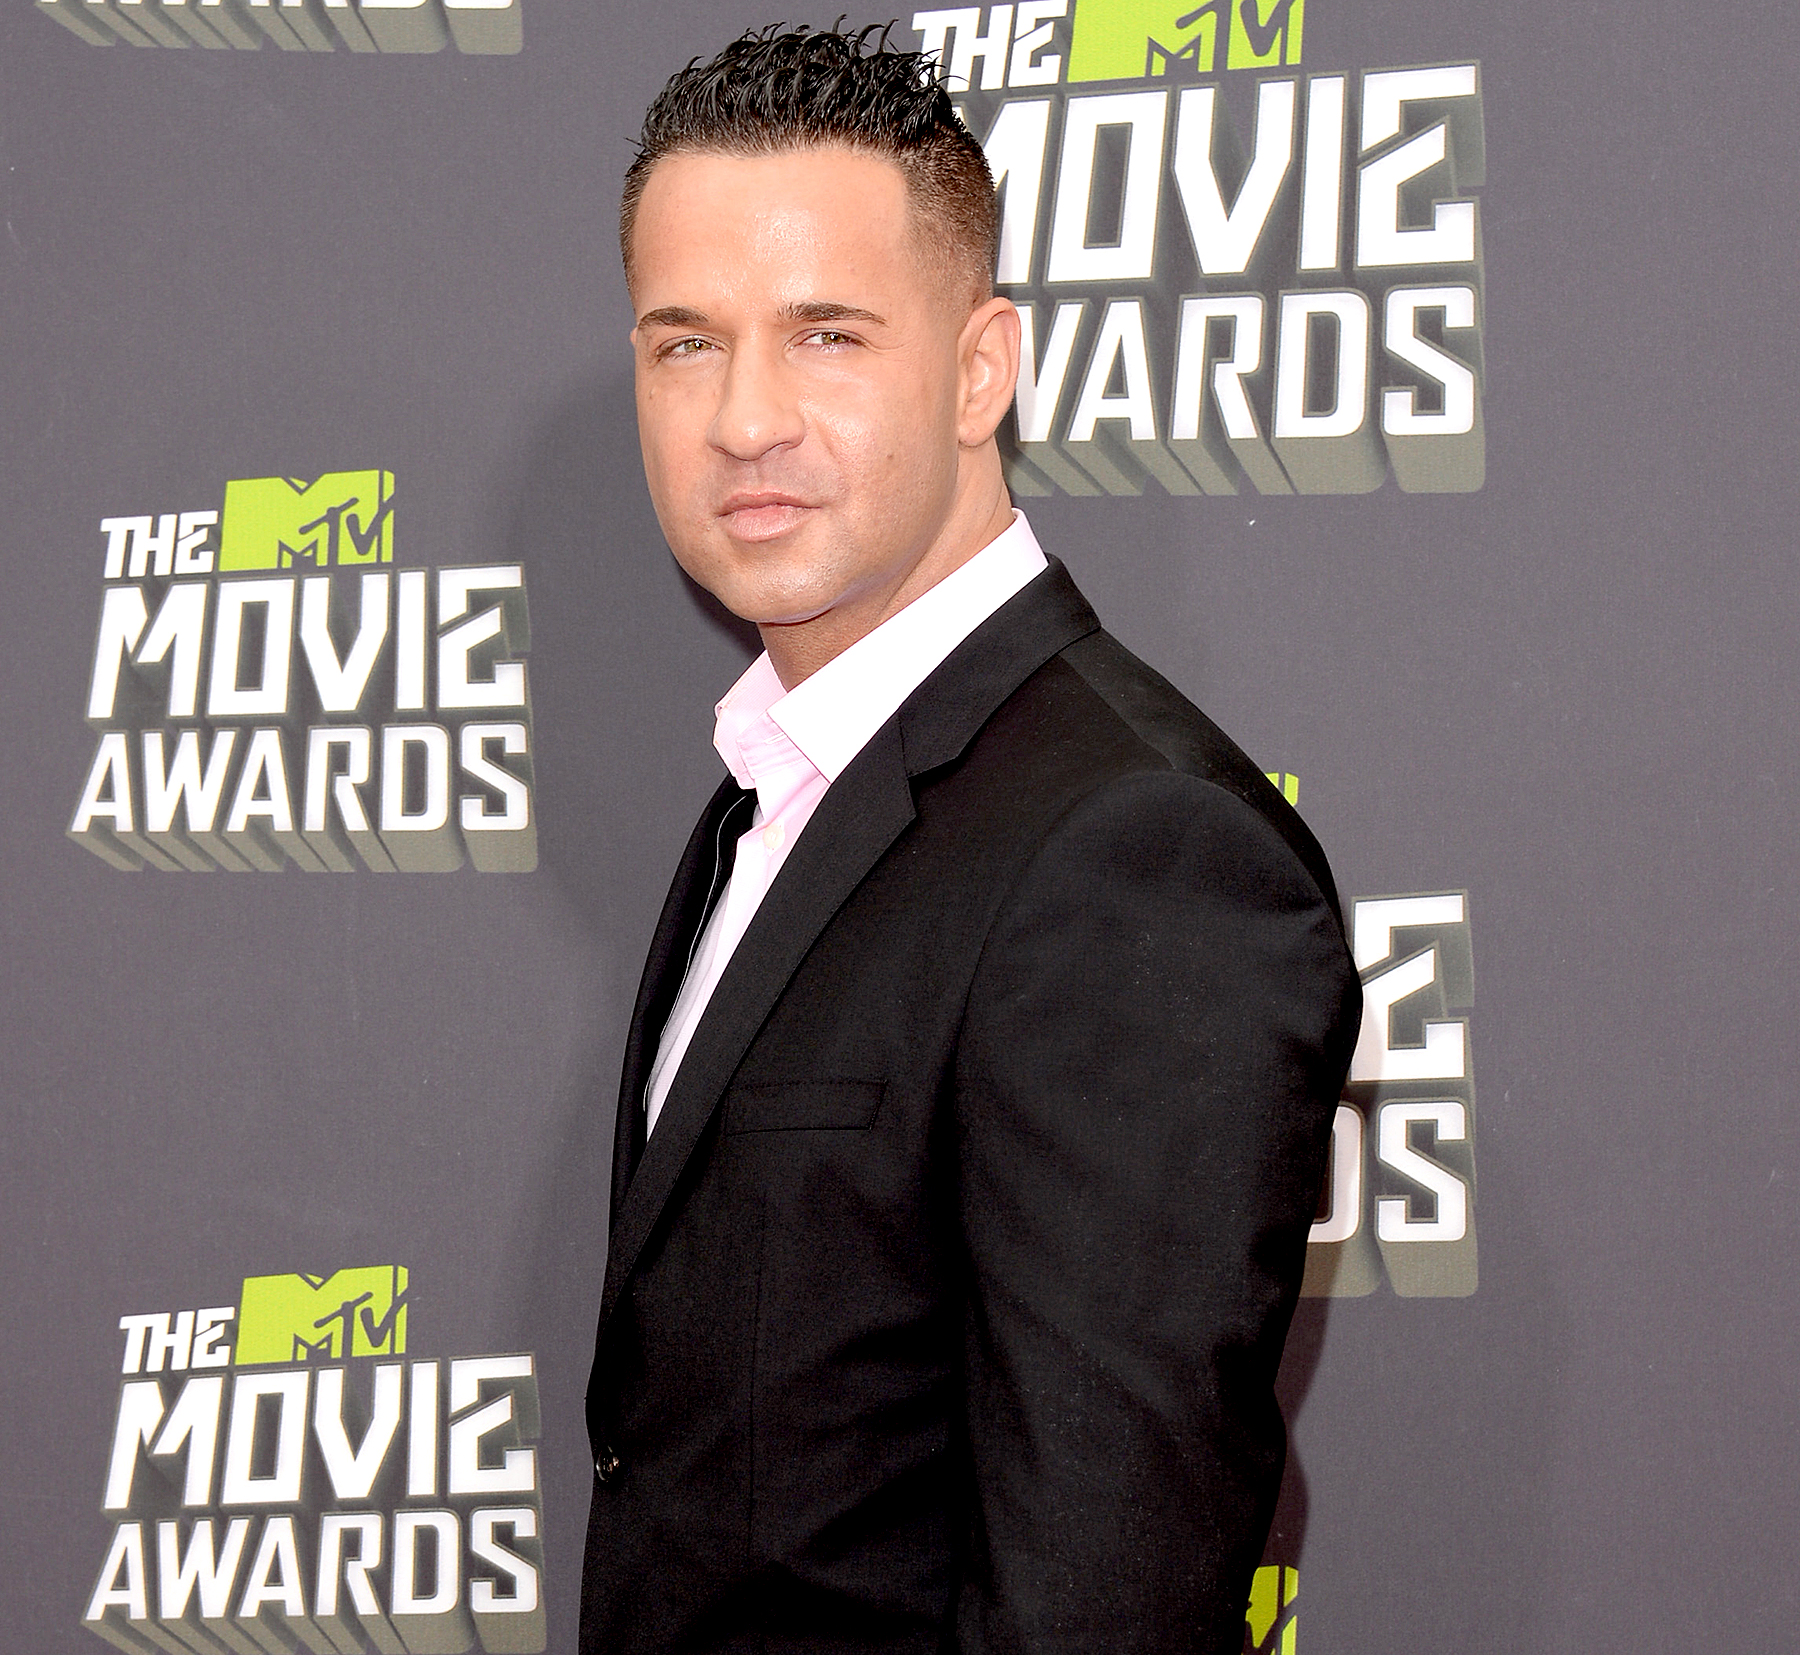 Former MTV star 'The Situation' to plead guilty to tax-related charges